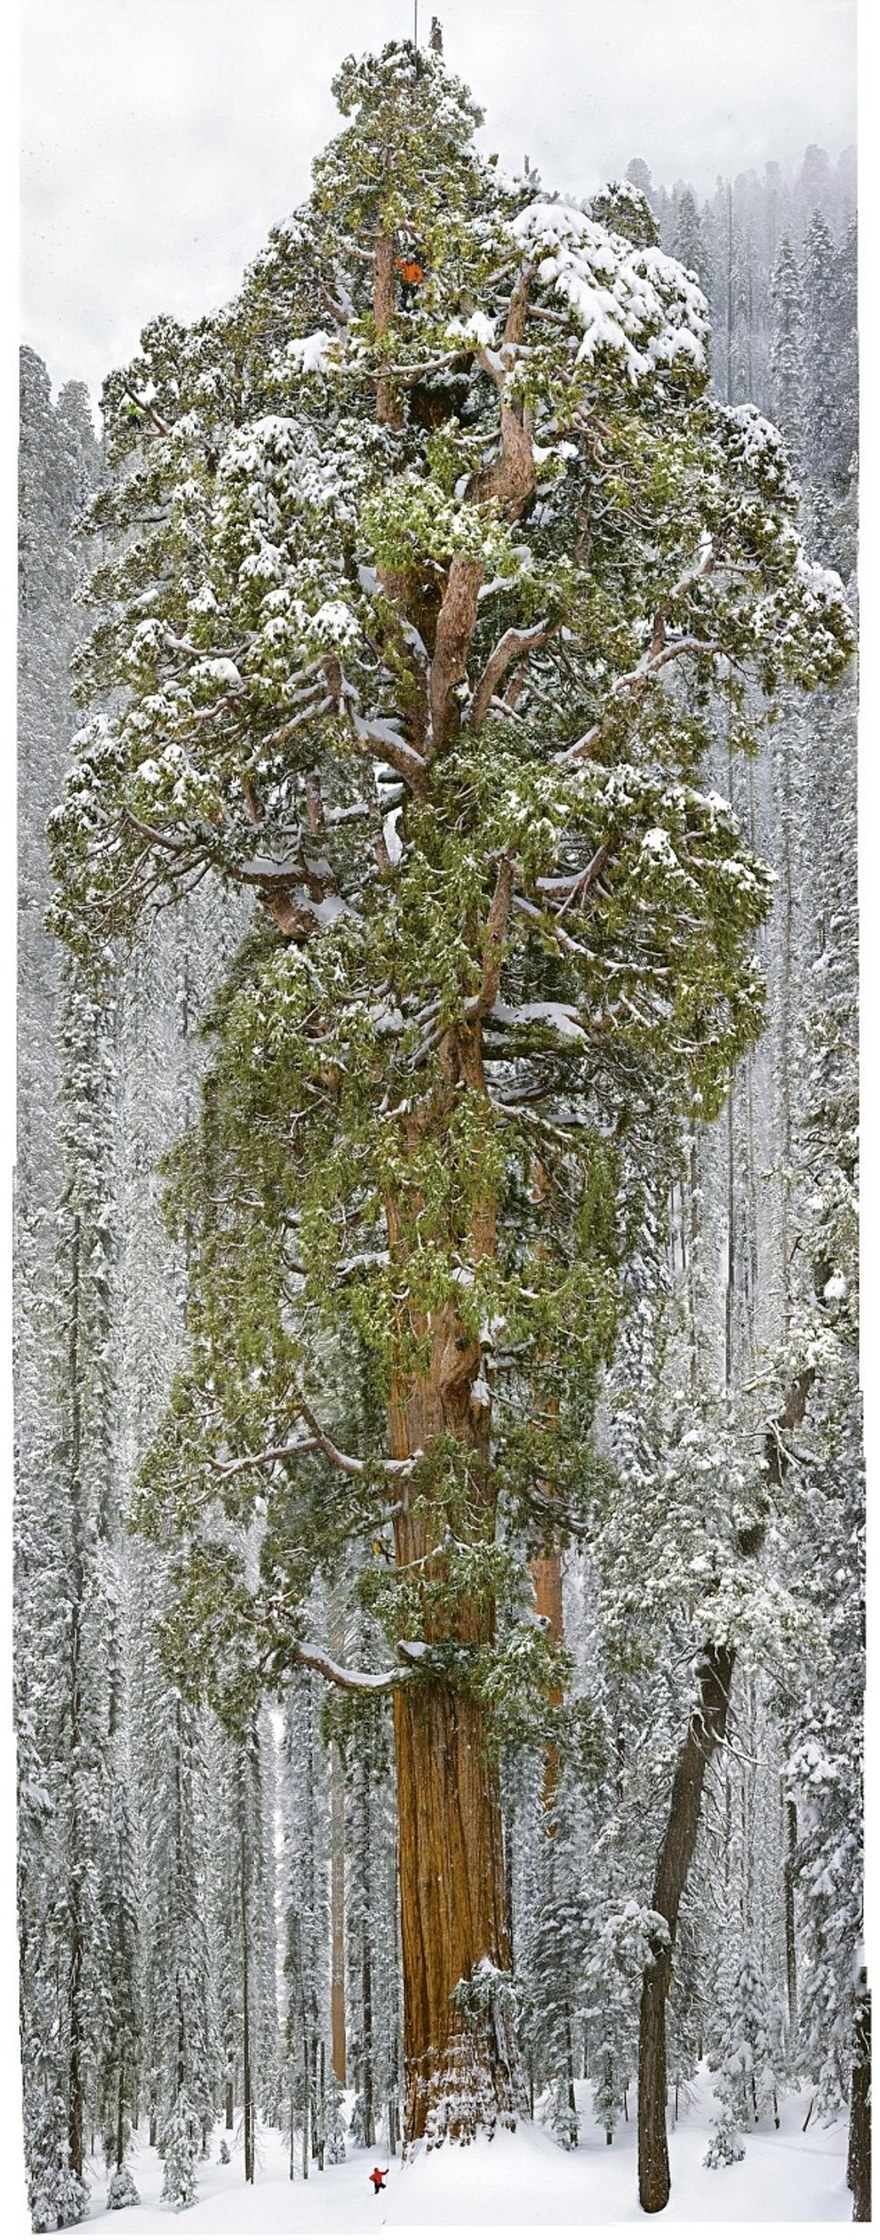 Tree that took 32 days to photograph 8